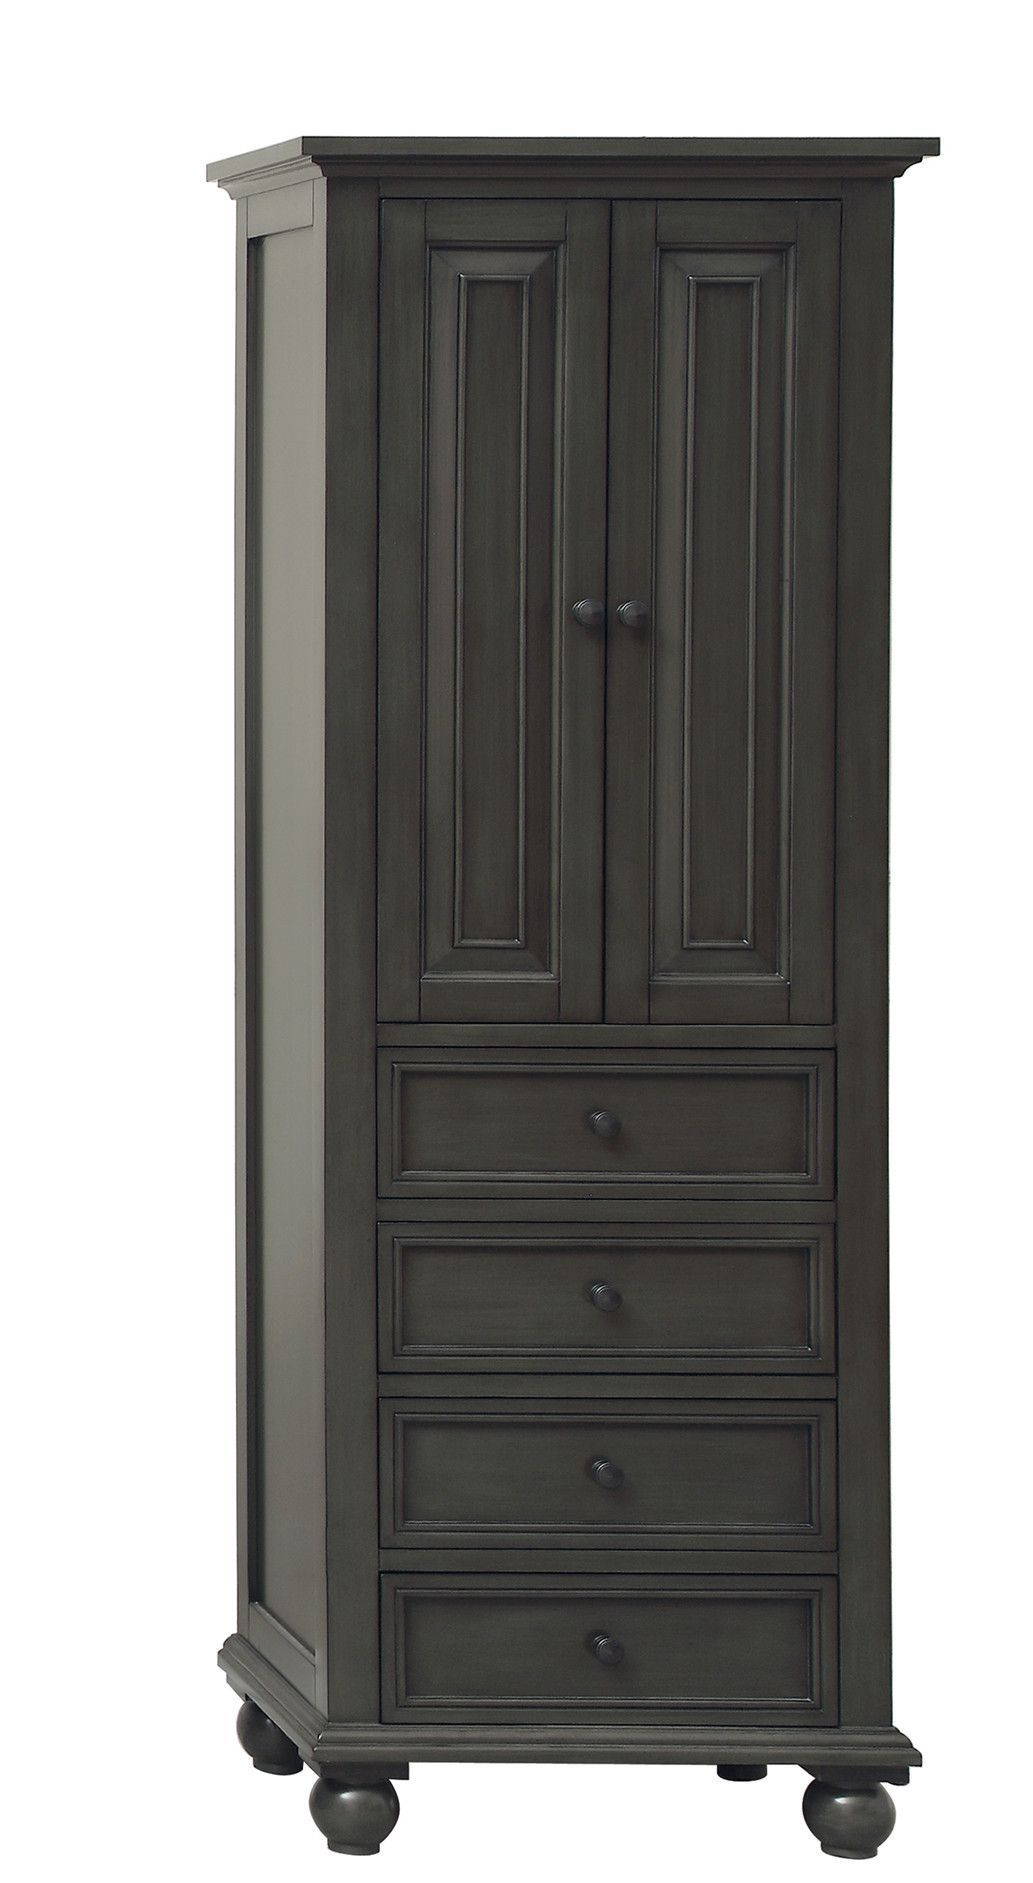 Thompson 24 x 68 freestanding bathroom linen tower cabinet